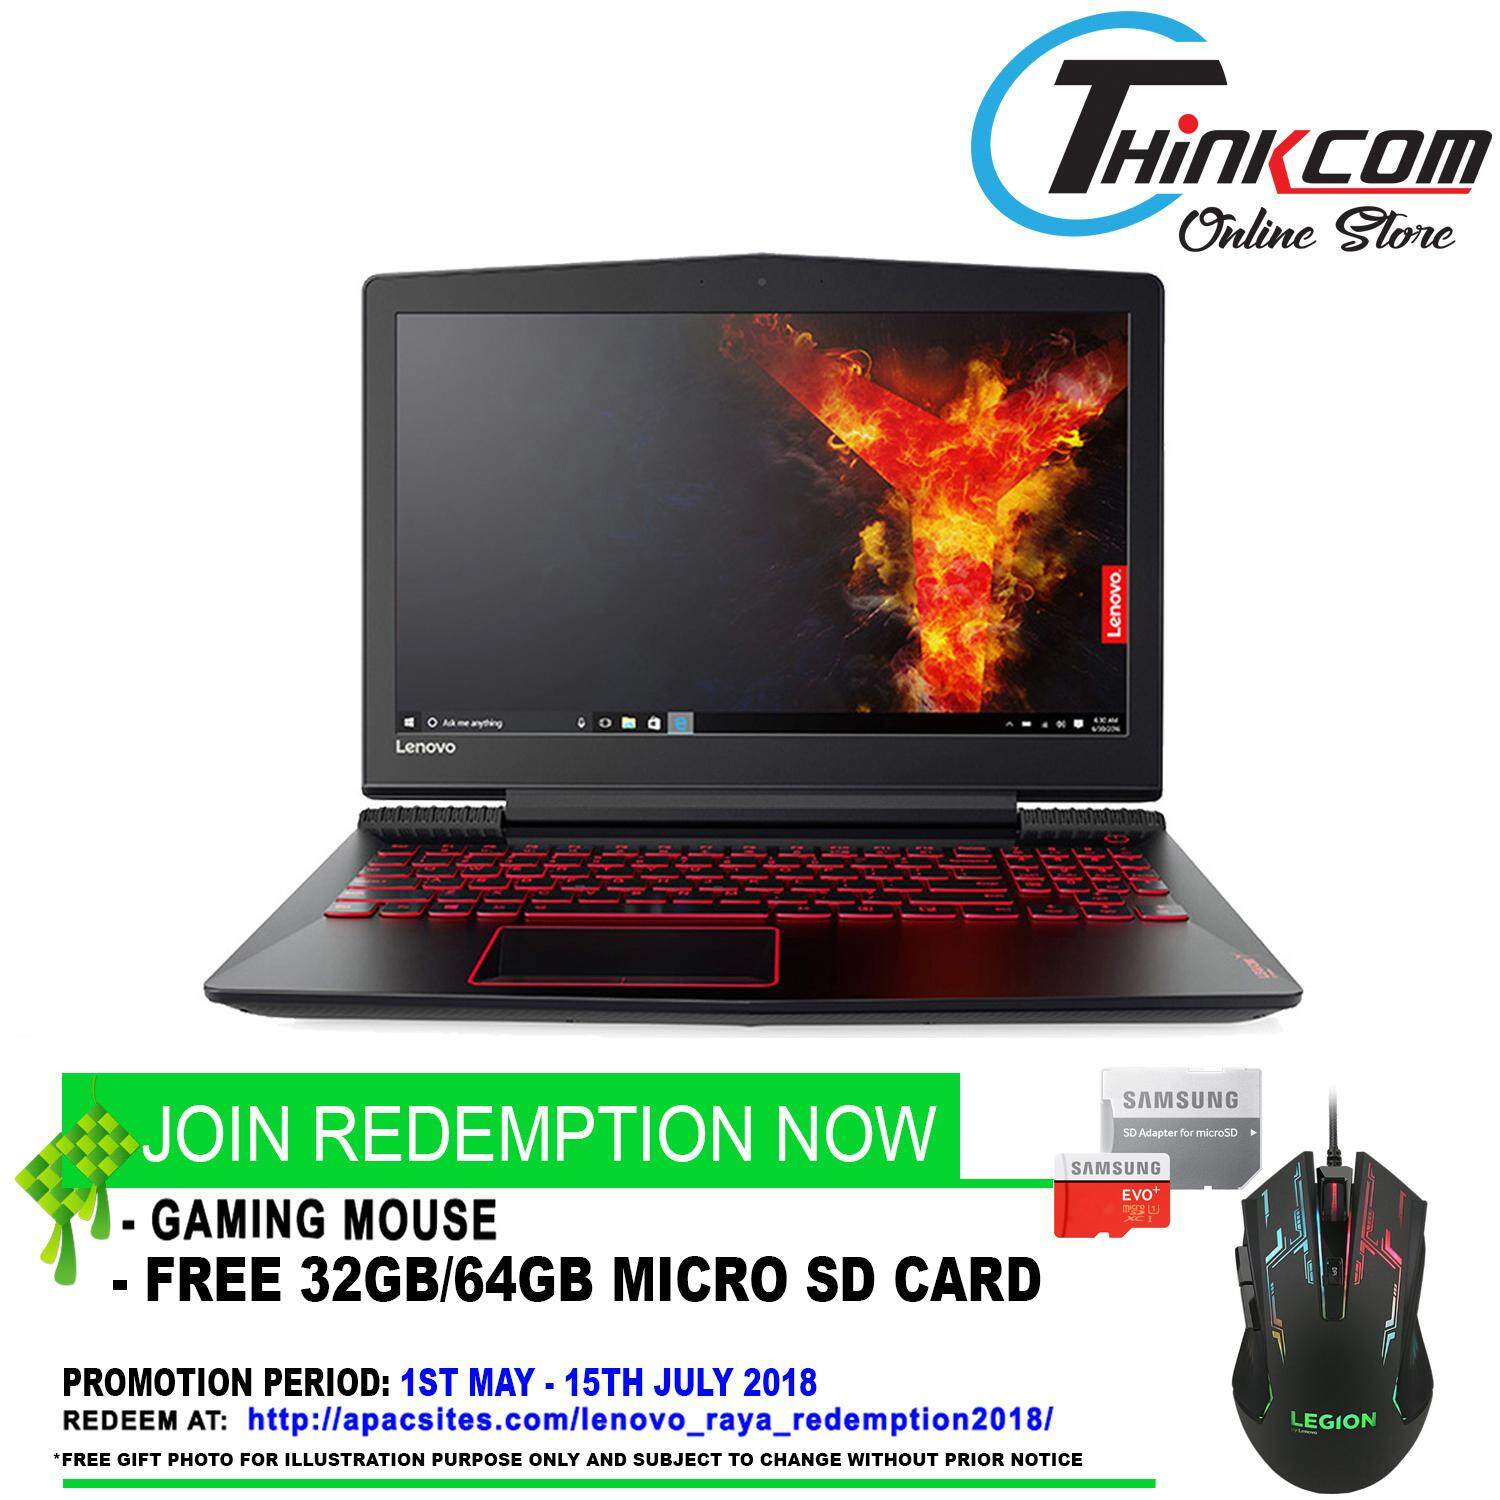 LENOVO LEGION Y520-15IKBN 80WK014CMJ (I7-7700HQ/4GB/1TB/2GB GTX1050/W10H/2YRS ON-SITE) ONSITE) + FREE Micro SD Card 32GB / 64GB -- Redeem Free Gaming Mouse Malaysia